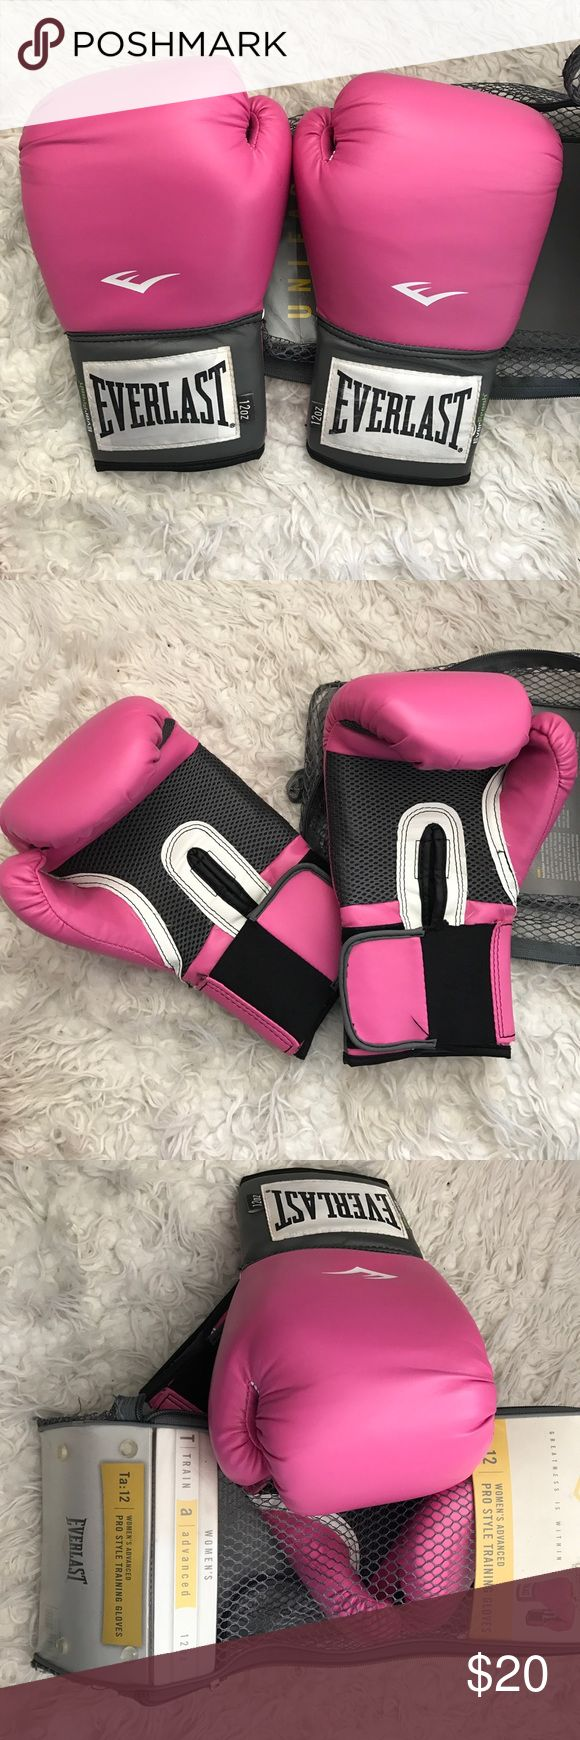 Everlast Boxing Gloves Great Condition, Comes w/ Bag Other